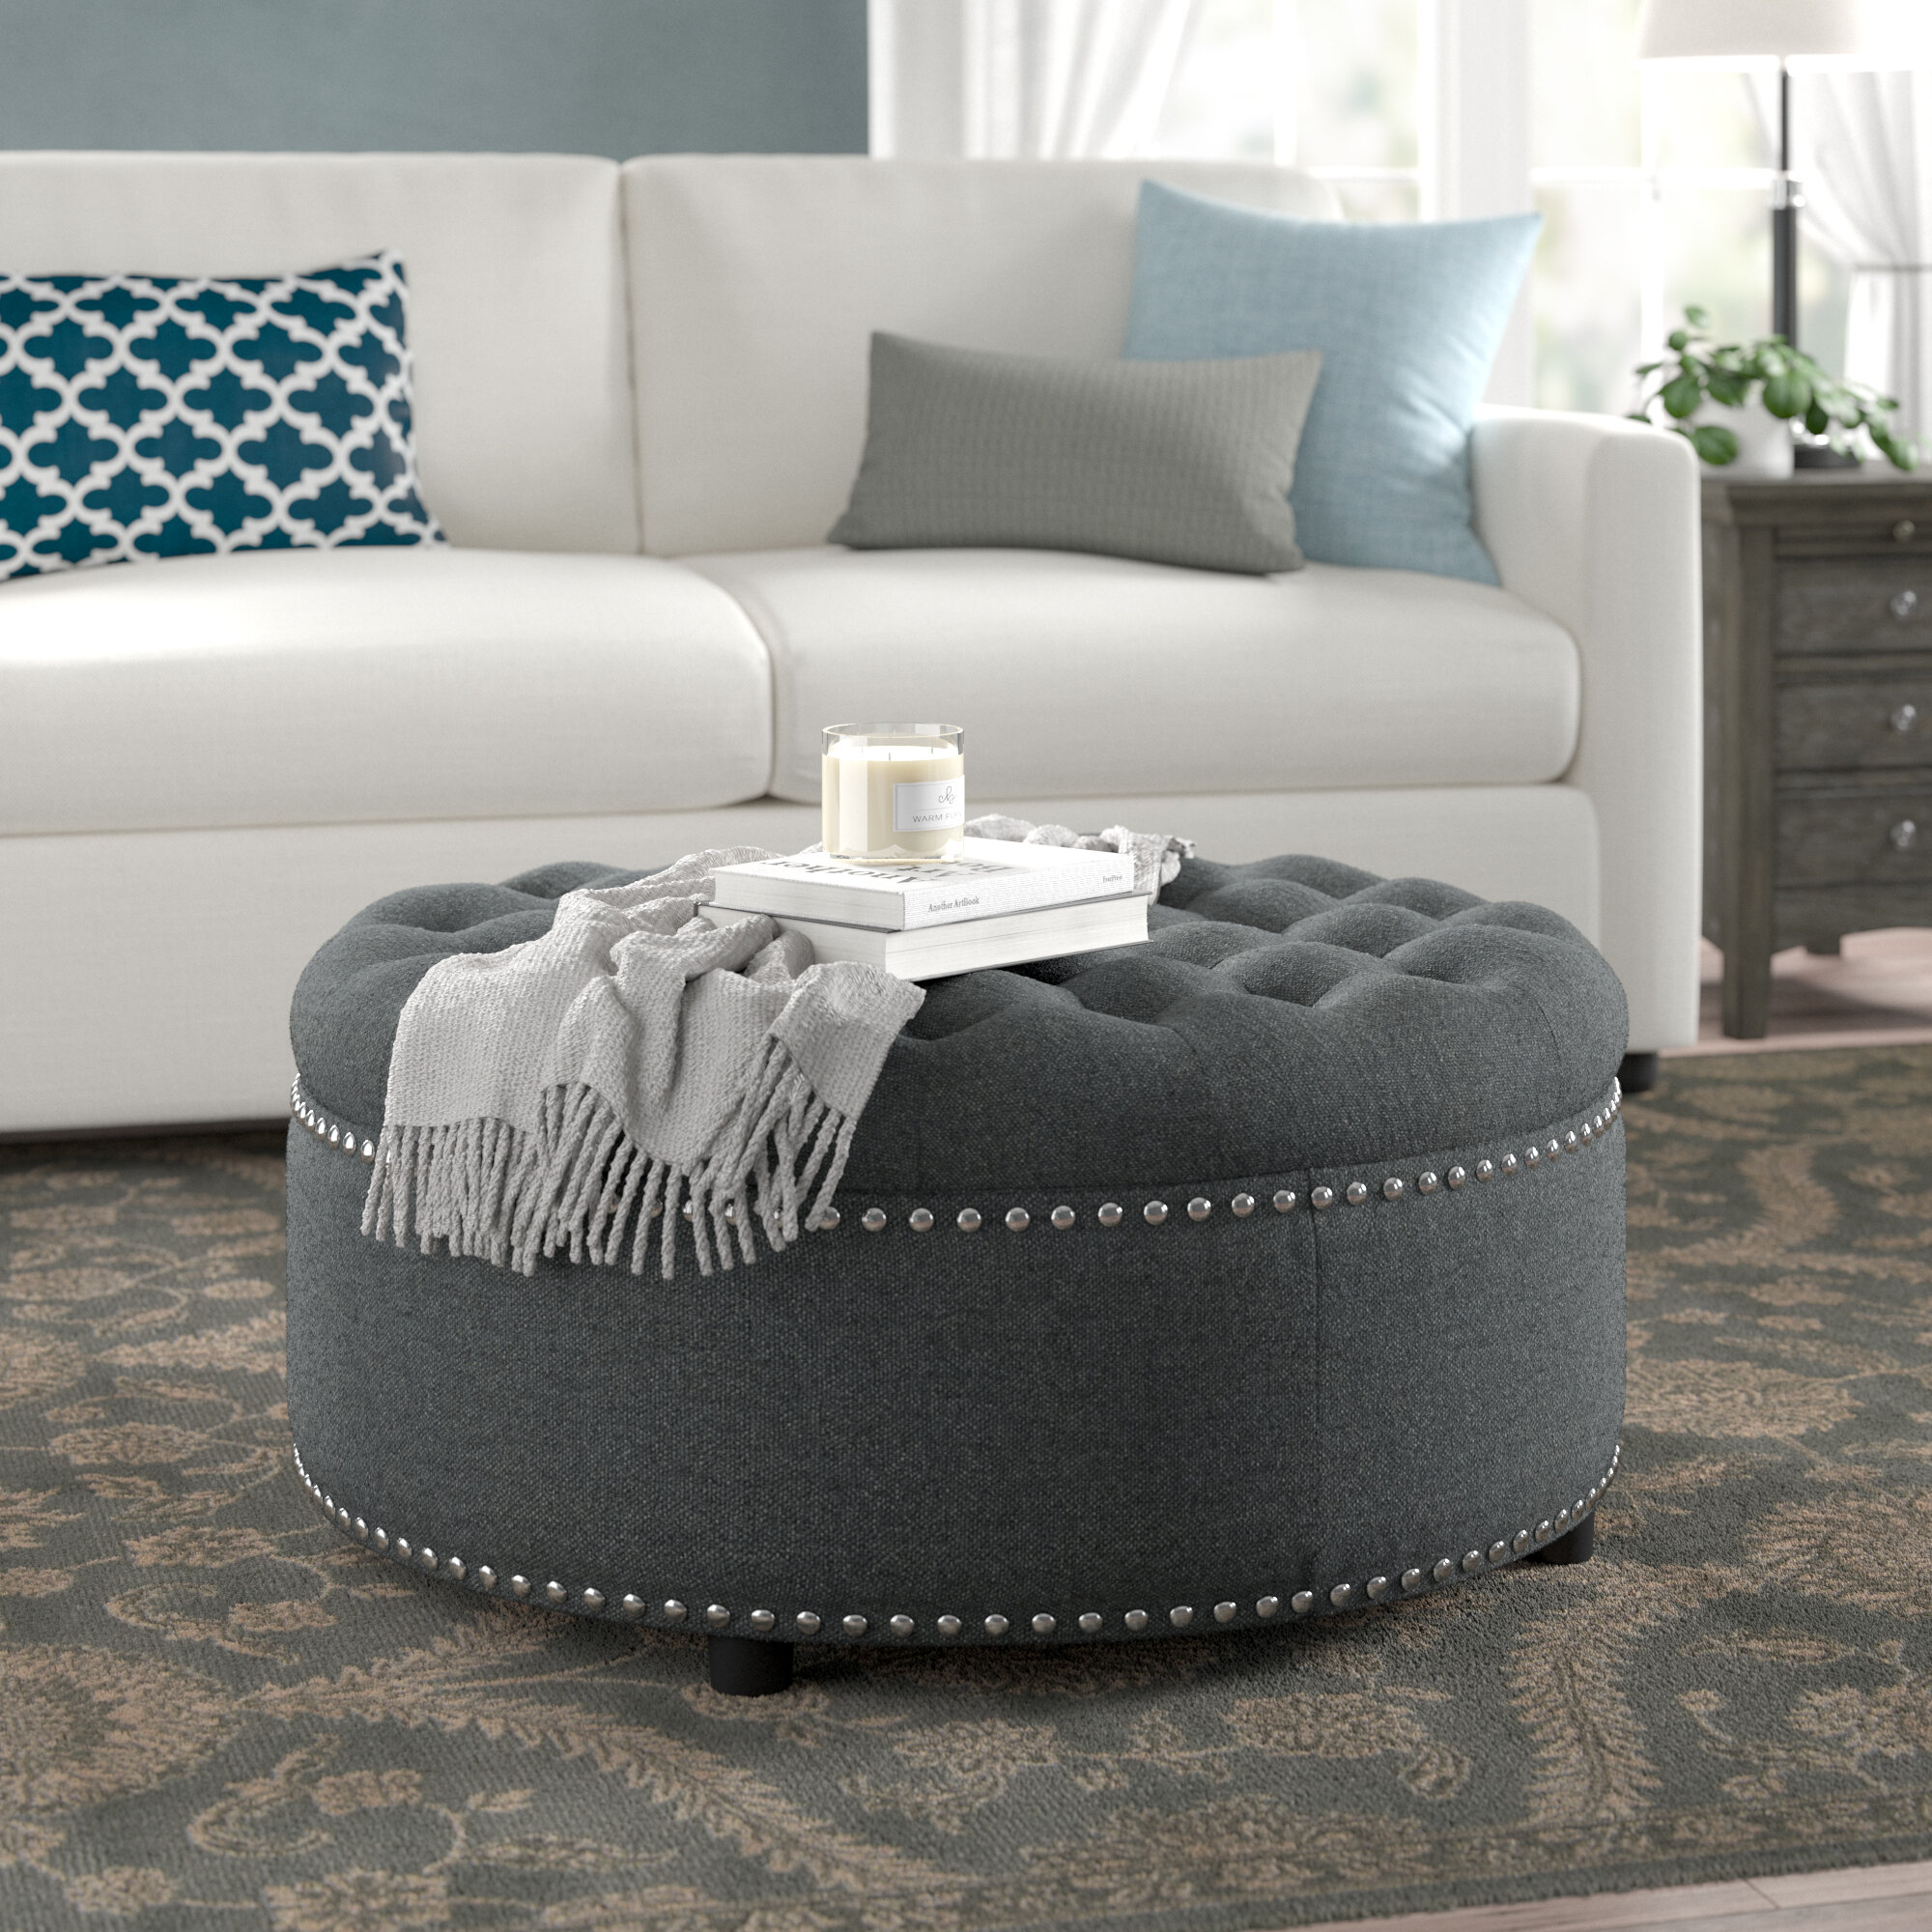 Groovy Camas Tufted Storage Ottoman Alphanode Cool Chair Designs And Ideas Alphanodeonline